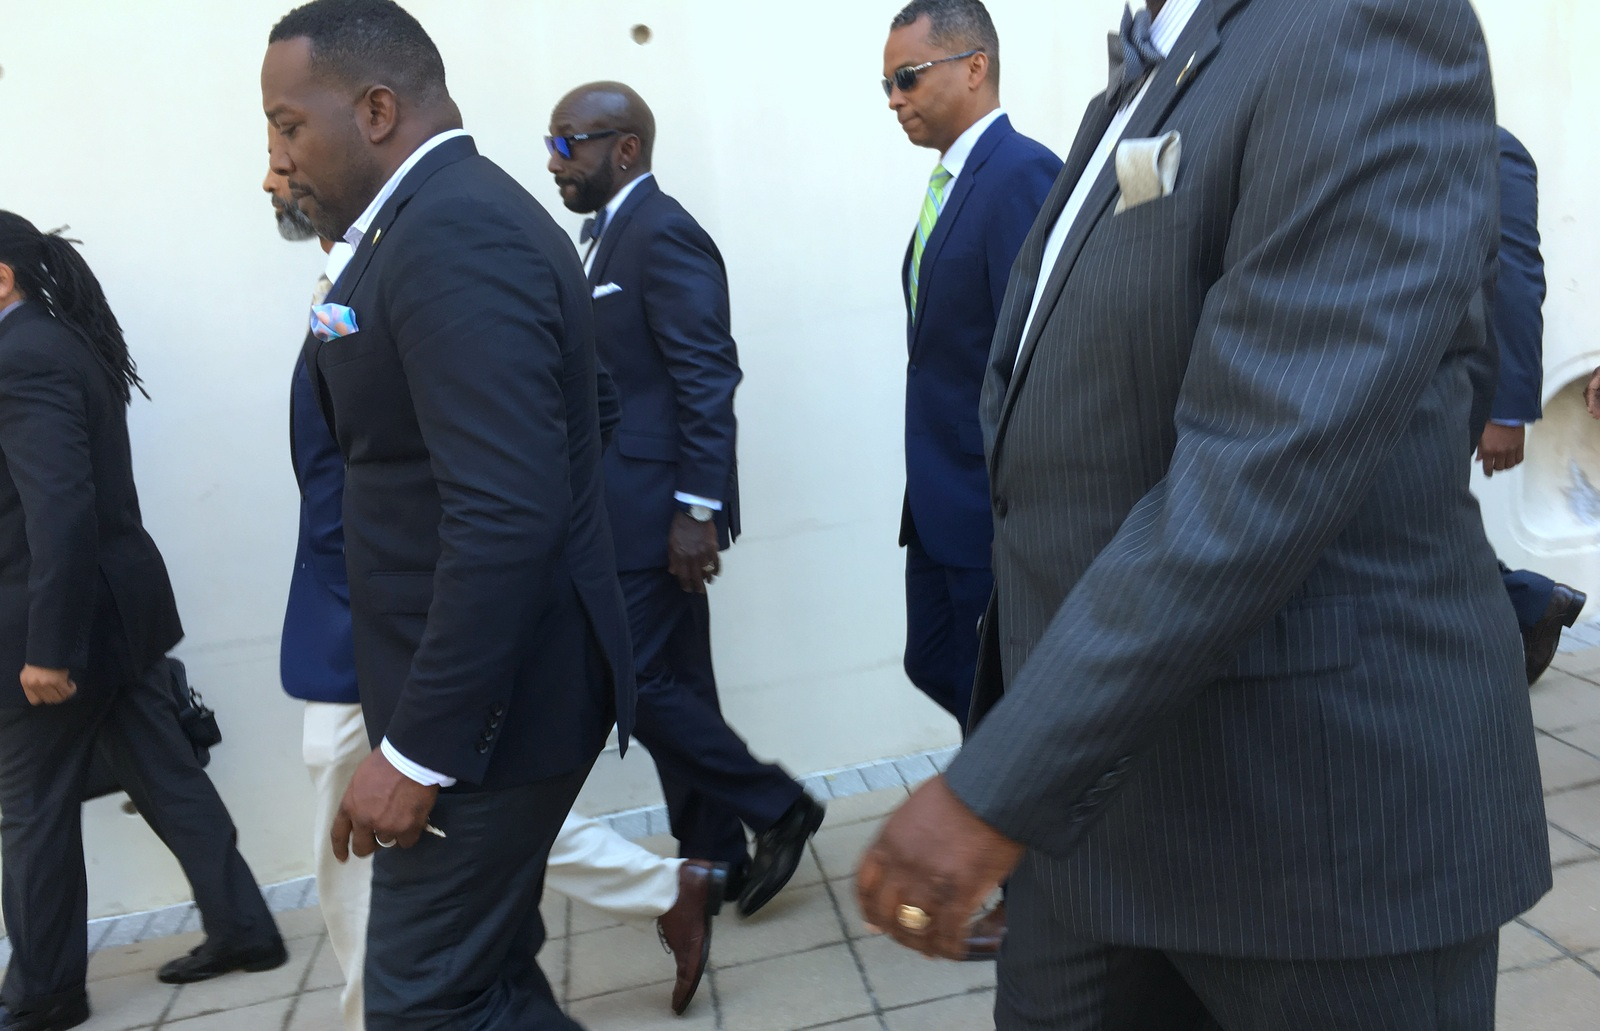 Darryl De Sousa (in green tie) leaves the courthouse this afternoon with his supporters. (Fern Shen)